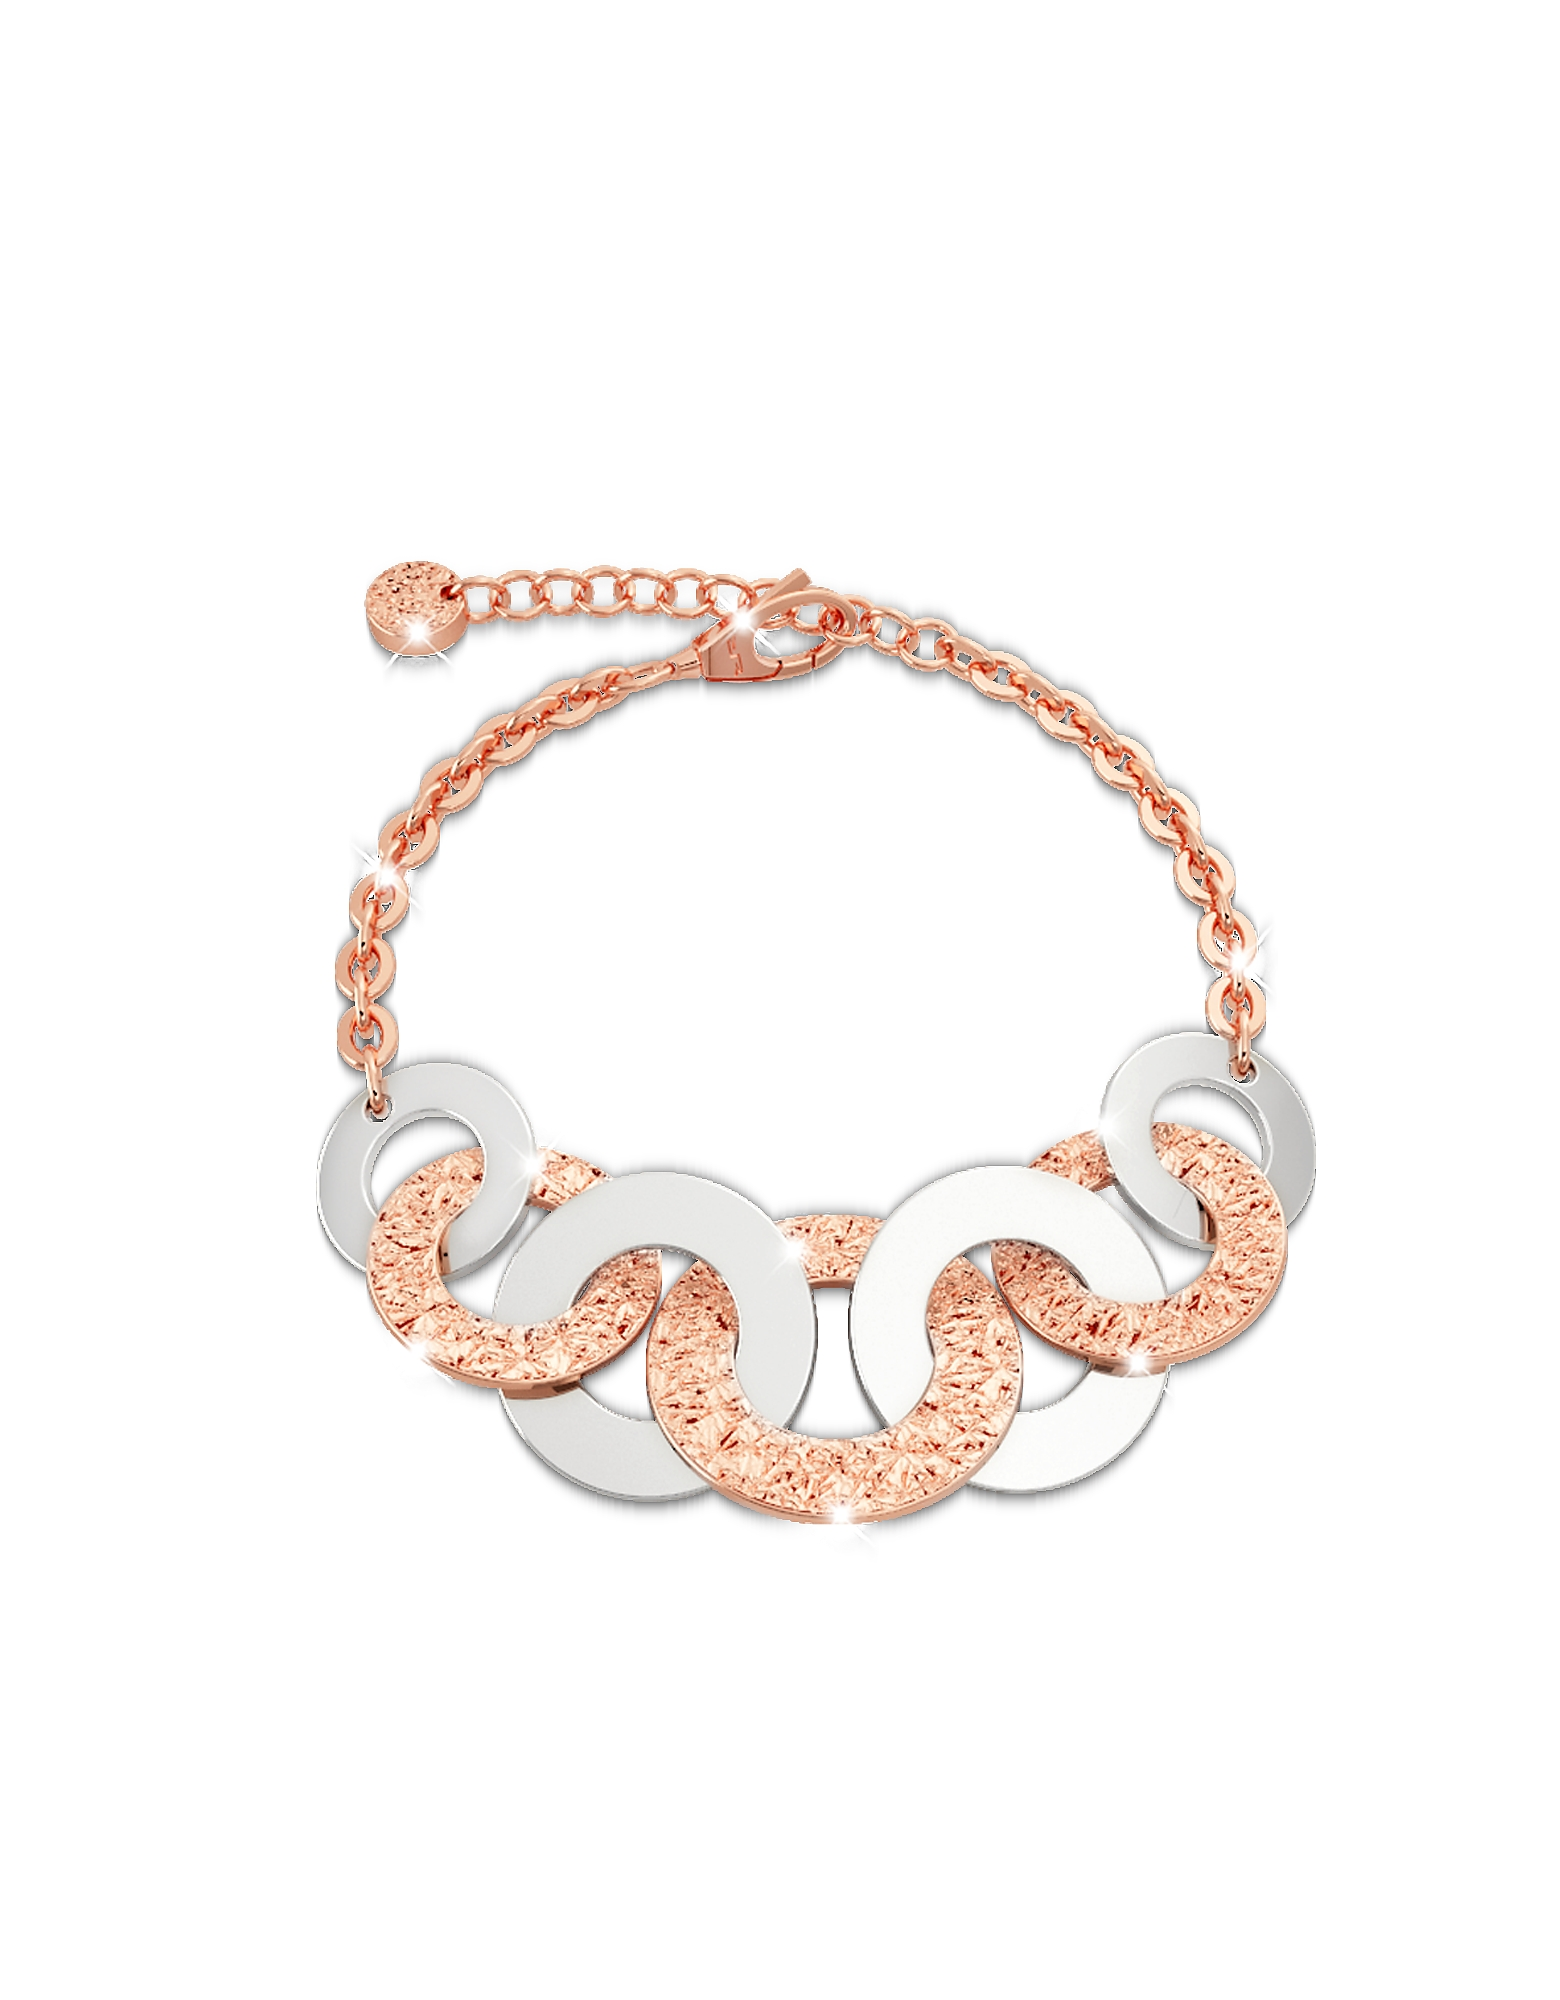 Rebecca Bracelets, R-ZERO Rose Gold Over Bronze Bracelet